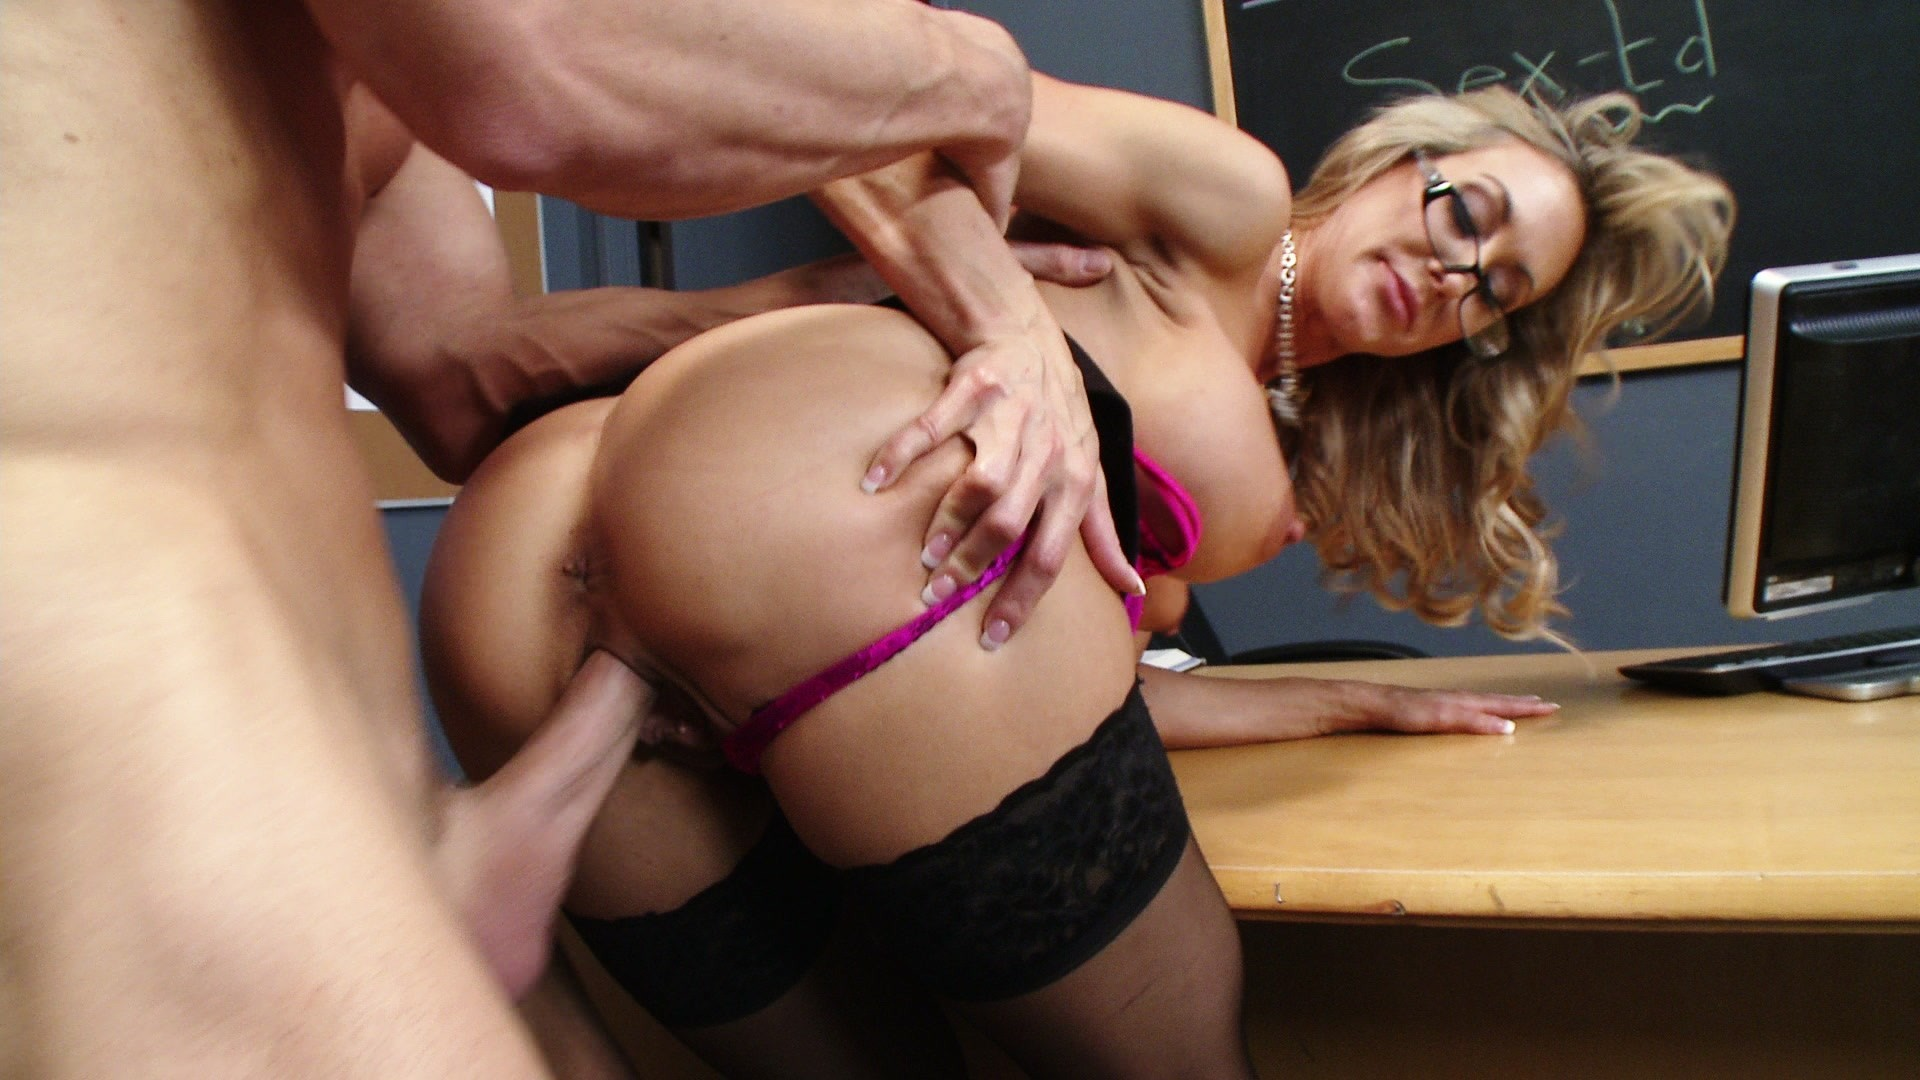 Teacher and chris porn, free amateur stocking movies